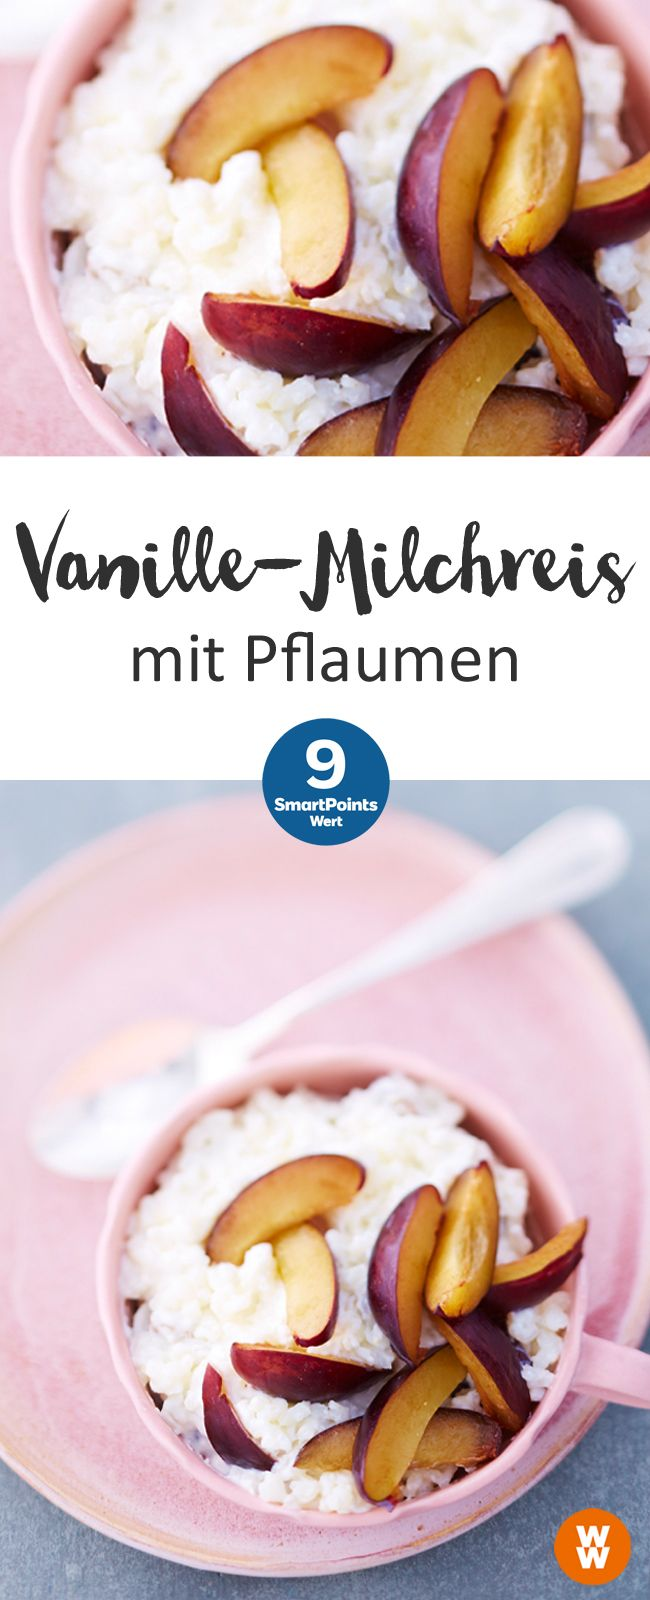 Vanille-Milchreis mit Pflaumen | 9 SmartPoints/Portion, Weight Watchers, fertig in 50 min.